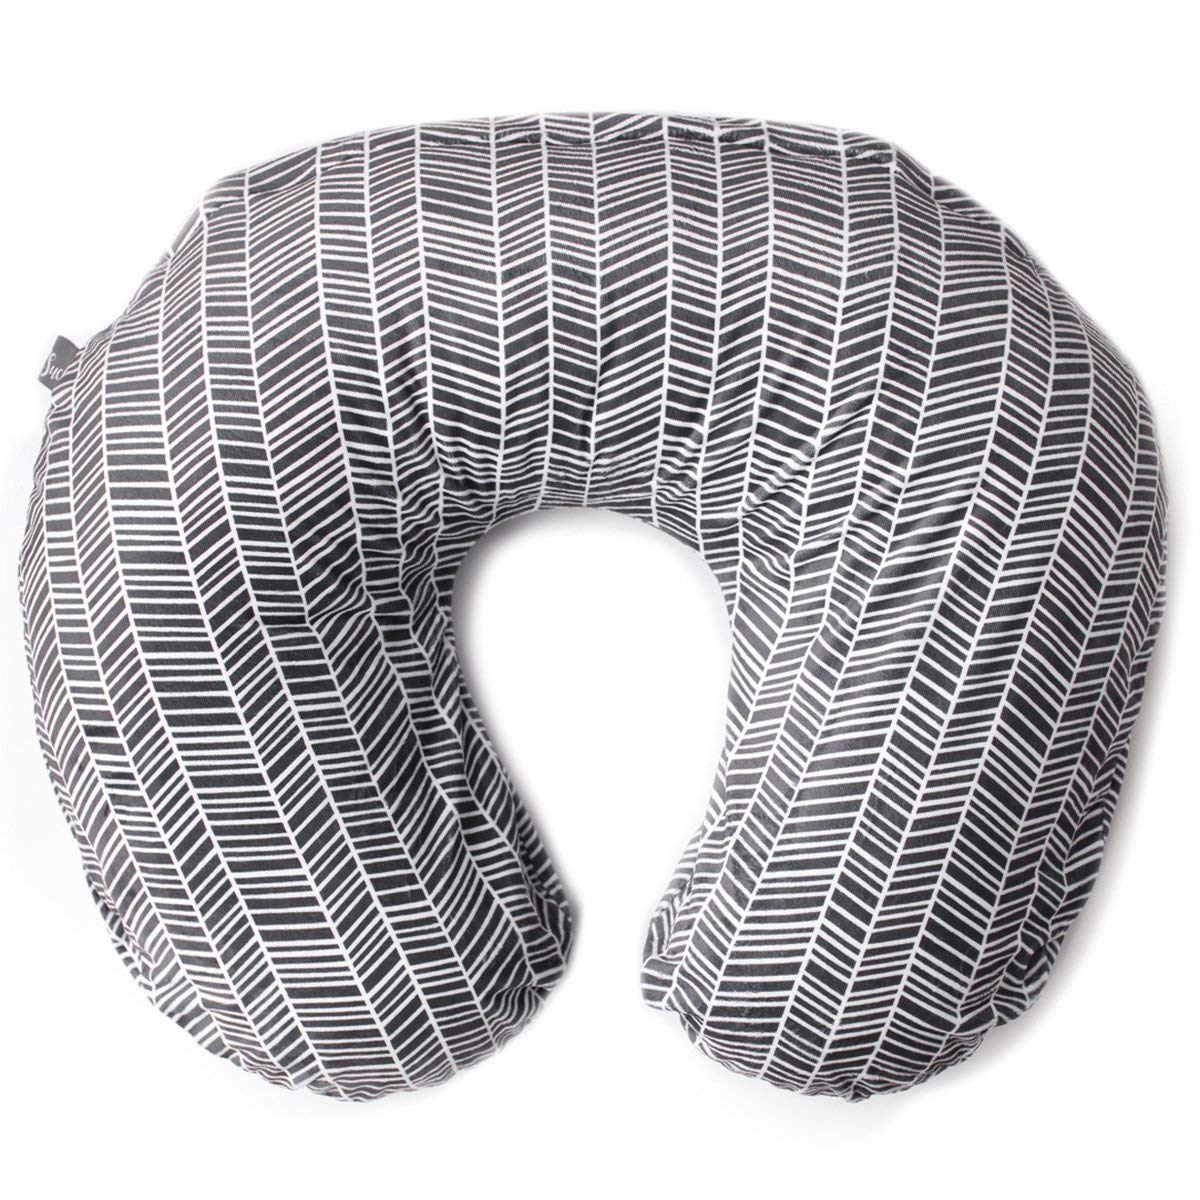 Minky Nursing Pillow Cover | Herringbone Pattern Slipcover | Best for Breastfeeding Moms | Soft Fabric Fits Snug On Infant Nursing Pillows to Aid Mothers While Breast Feeding | Great Baby Shower Gift